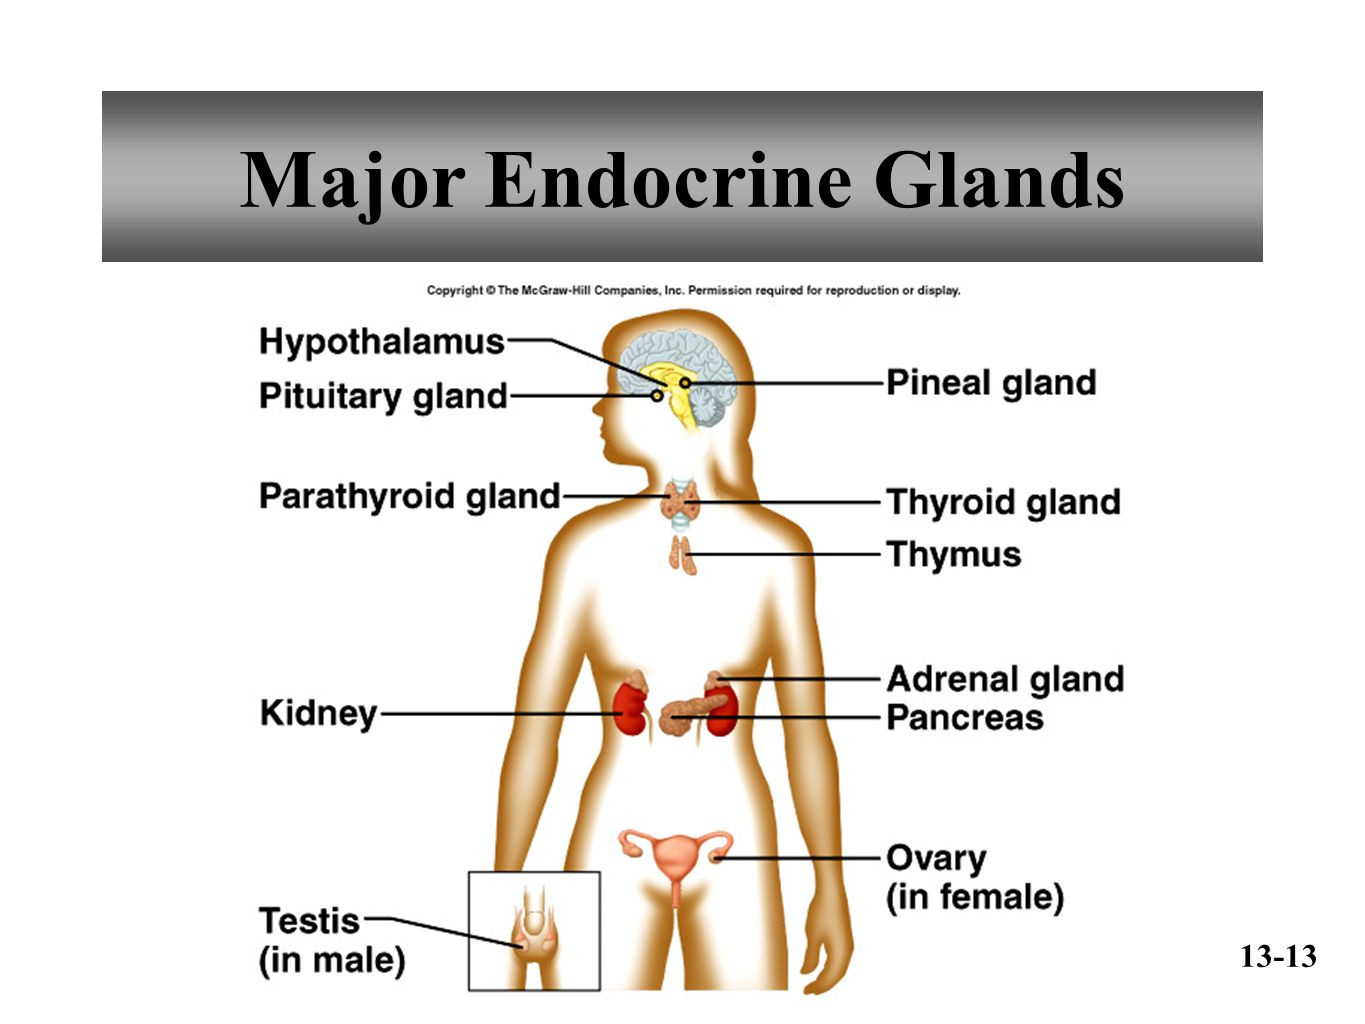 a description of the majod glands that make up the endocrine system